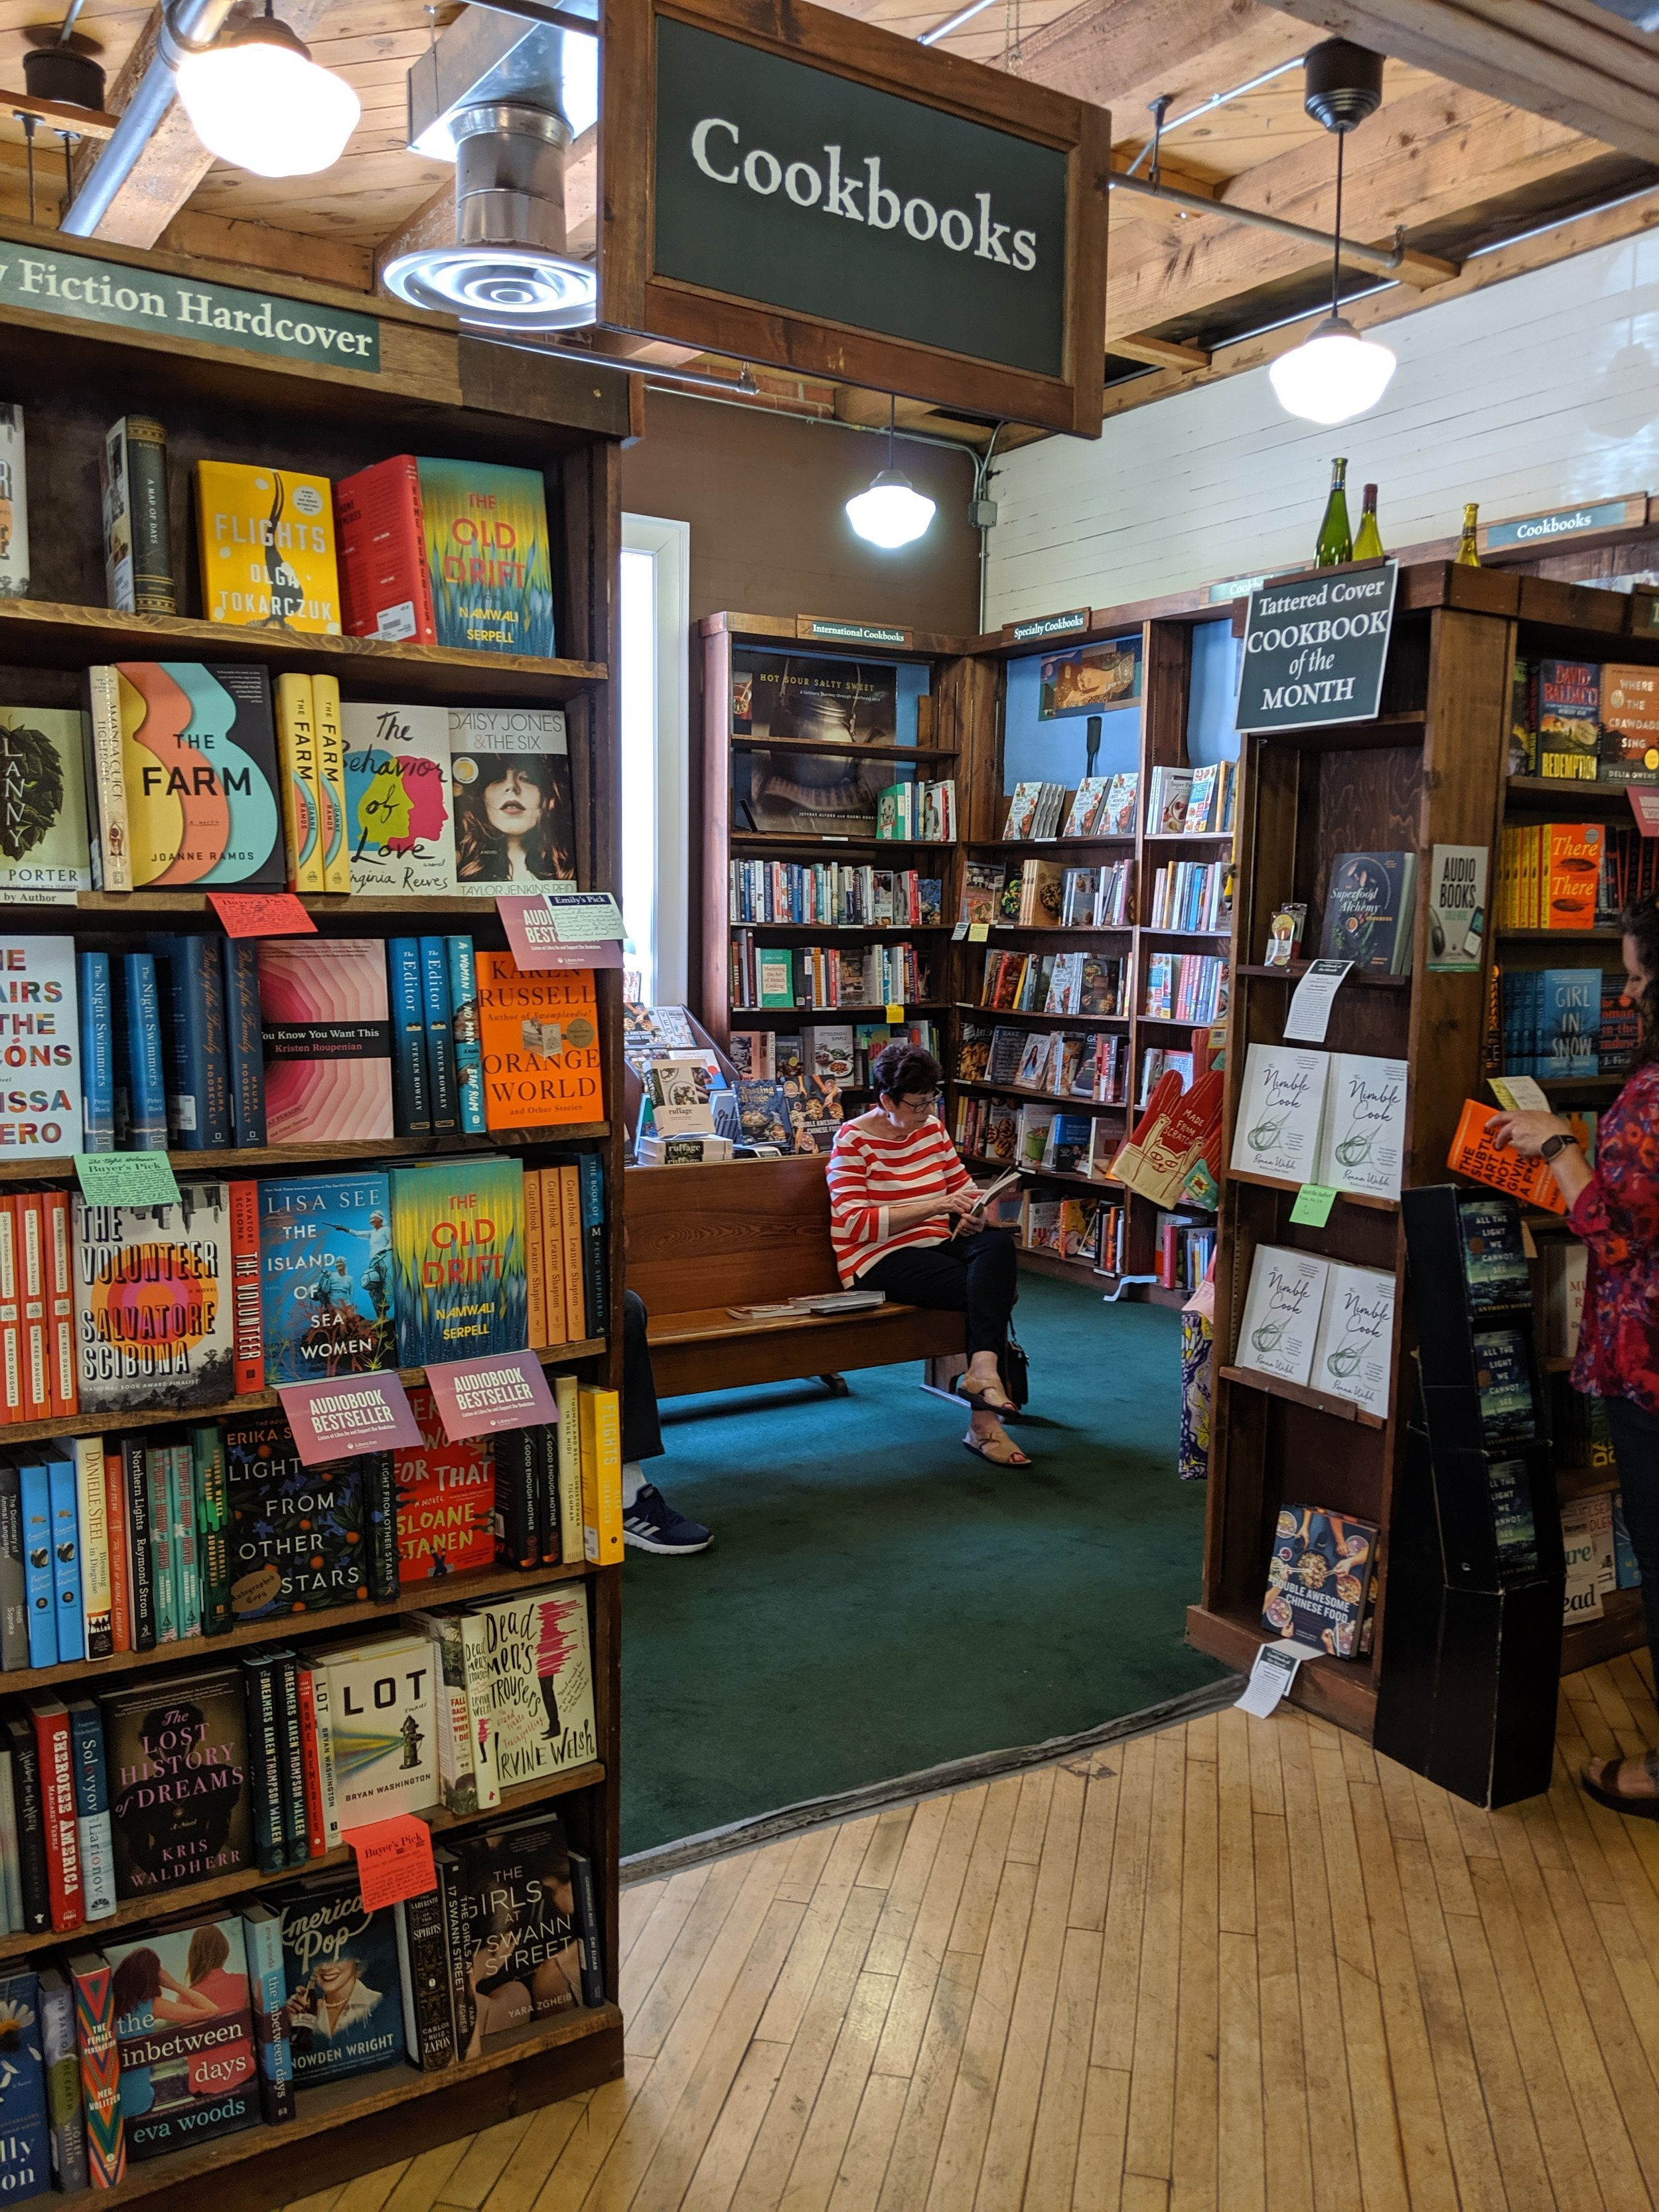 One of my favorite parts of Tattered Cover were the pews in the store for book lovers to sit down and check out the books.